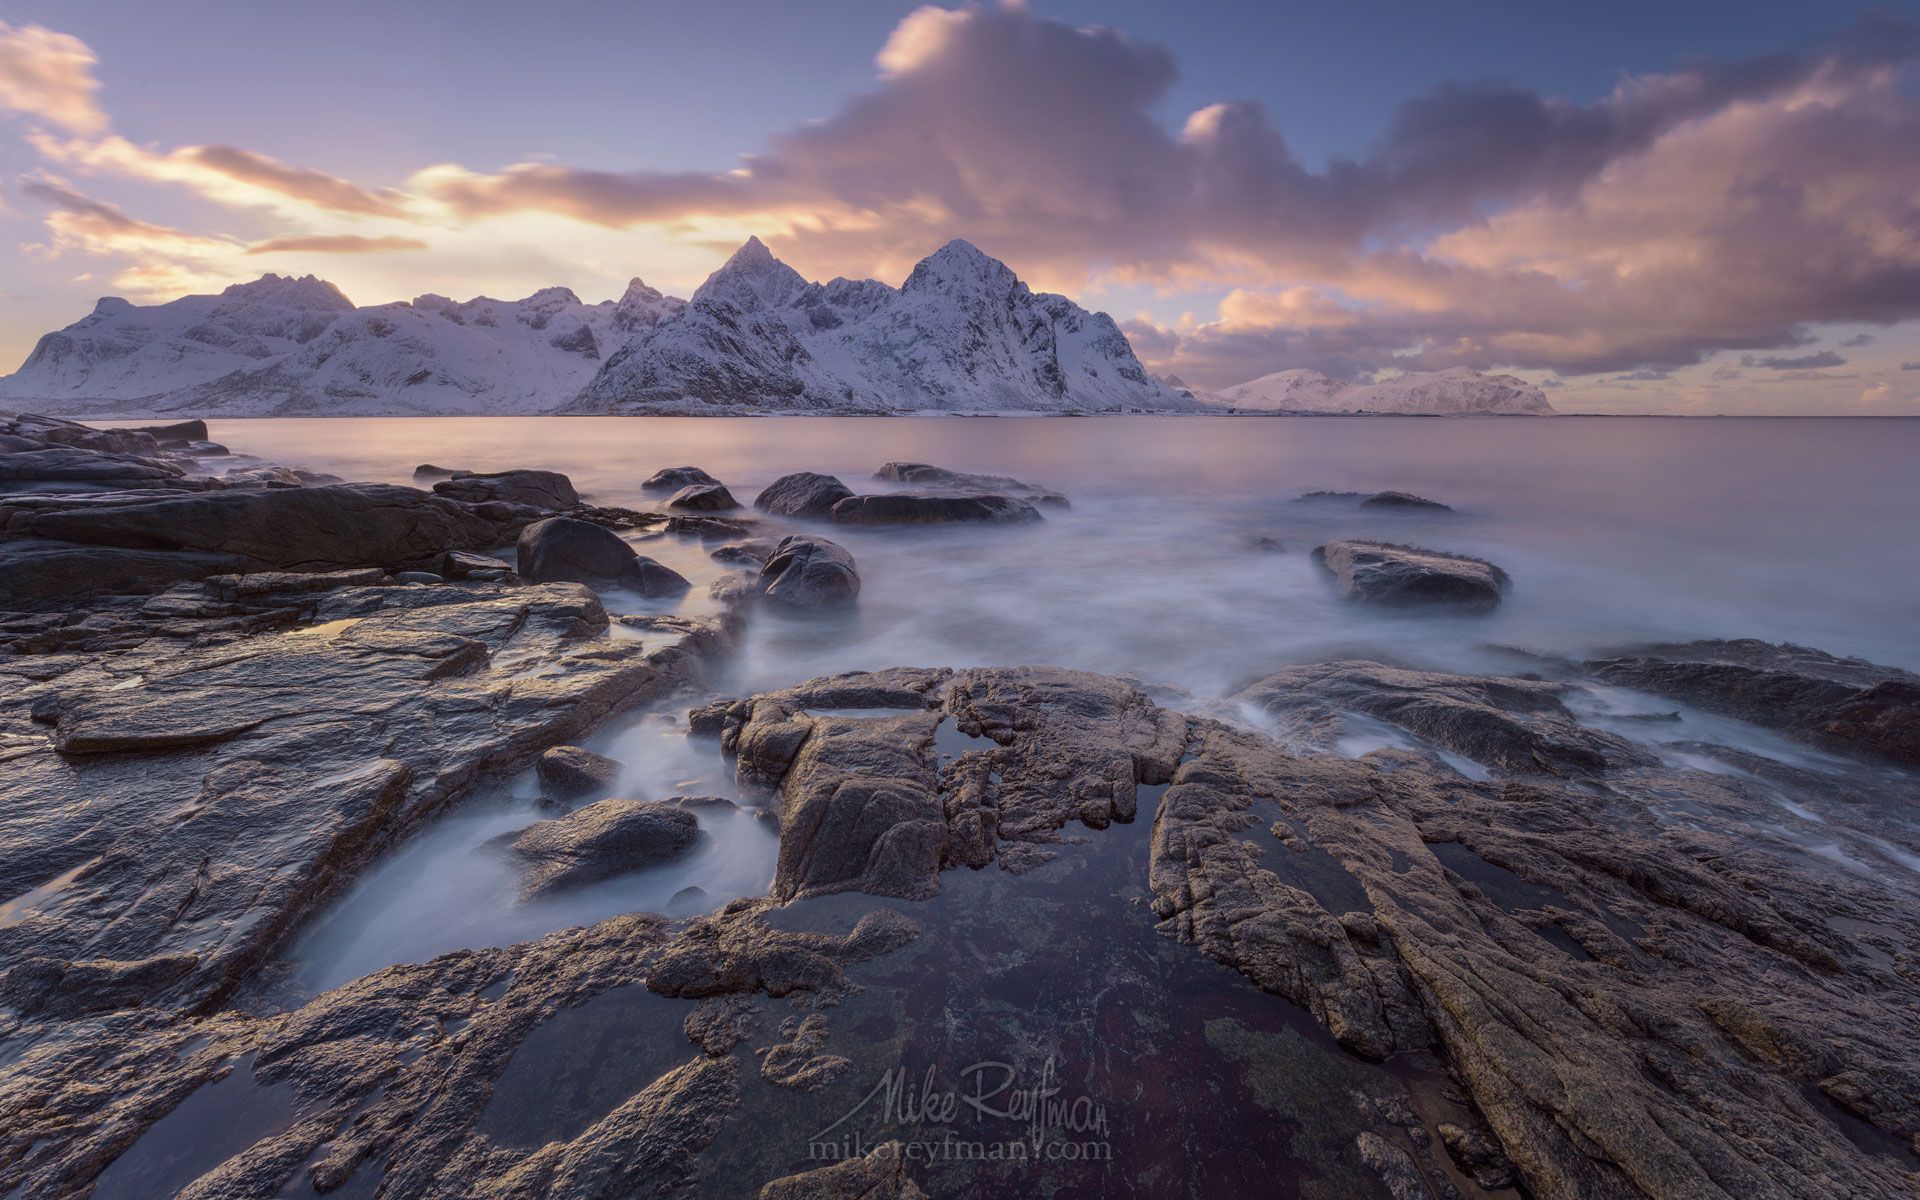 Vareid Shoreline and Jagged snow capped peaks of Flakstad Fjord before sunset. Vareid, Flakstadoya island, Lofoten archipelago, Nordland, Norway. LF-MRD1E0445 - Lofoten Archipelago in Winter, Arctic Norway - Mike Reyfman Photography